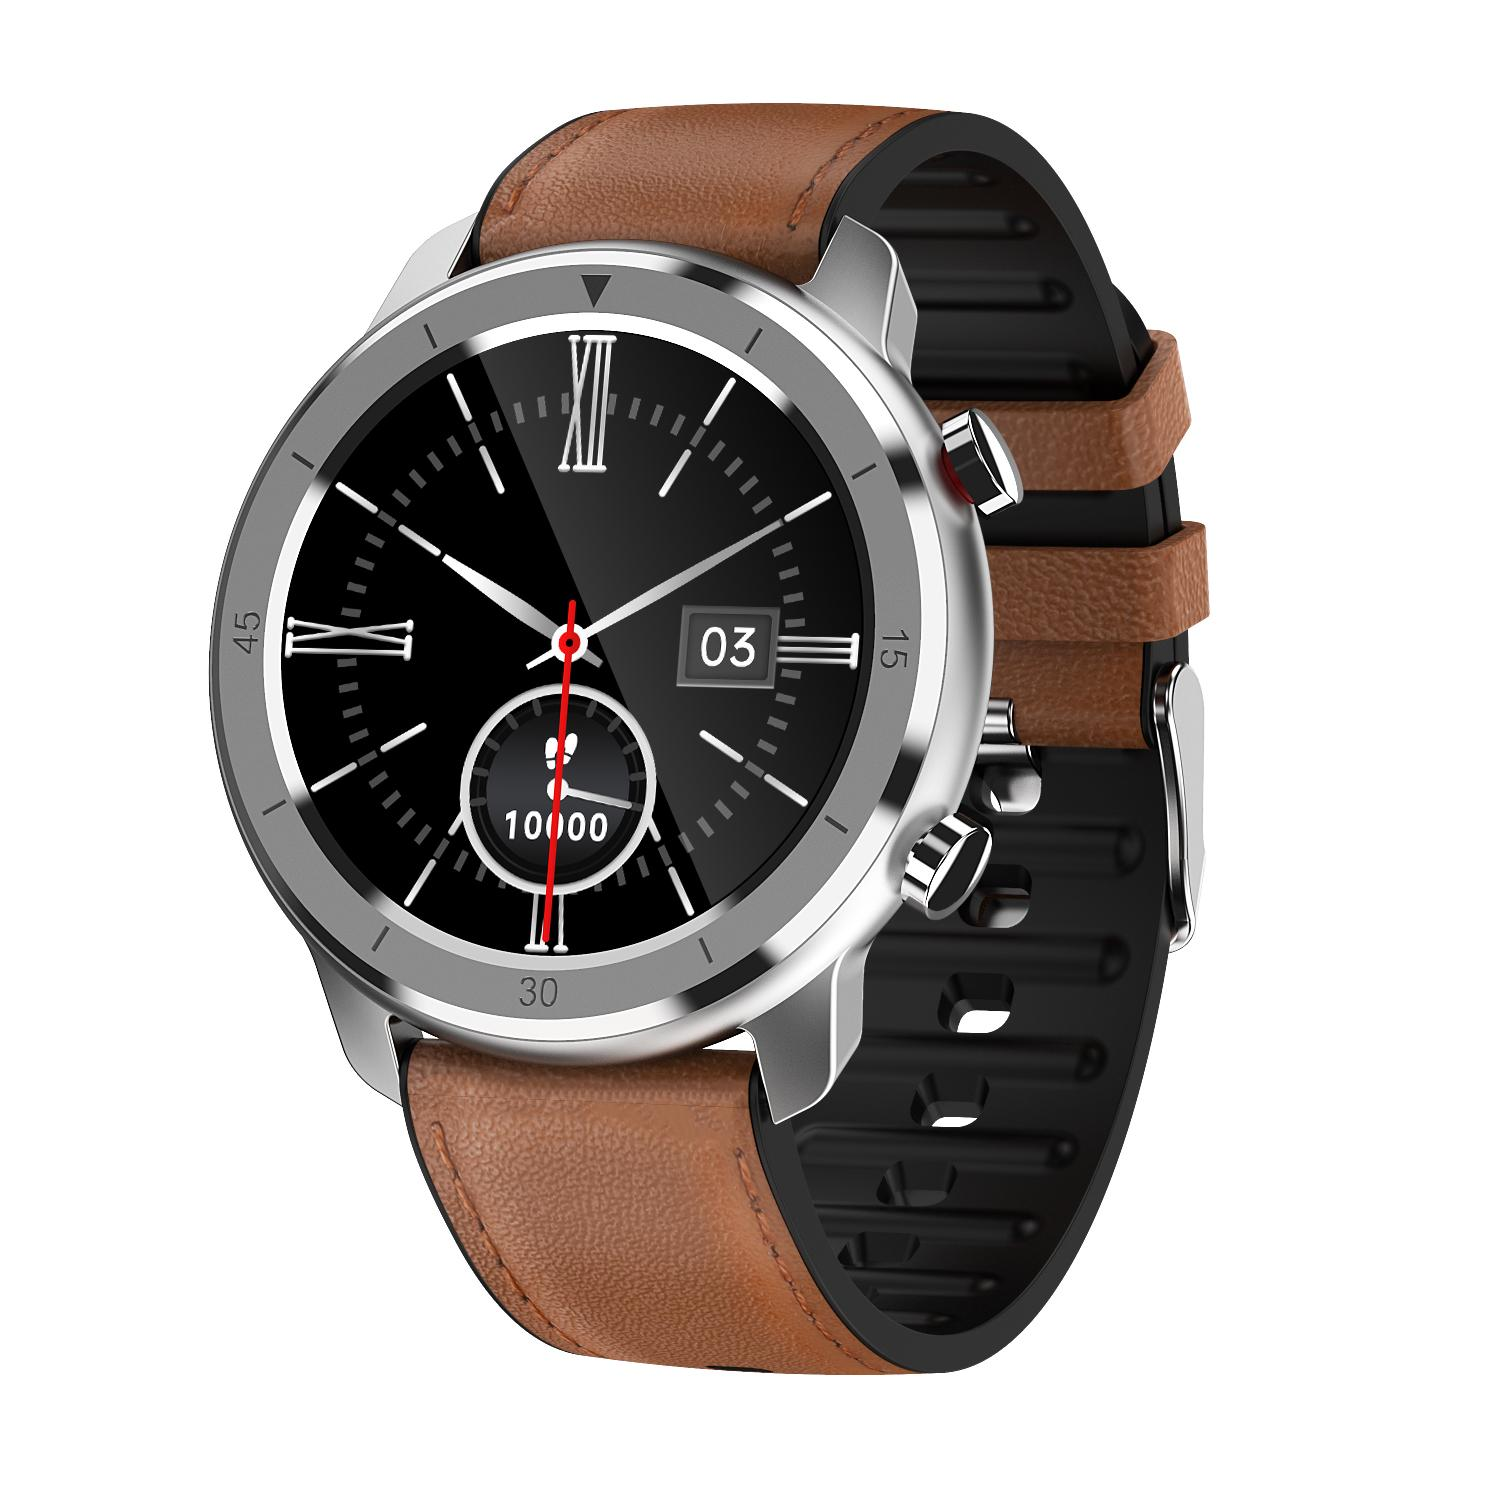 M97 round digital smart watch phone can answer call 2